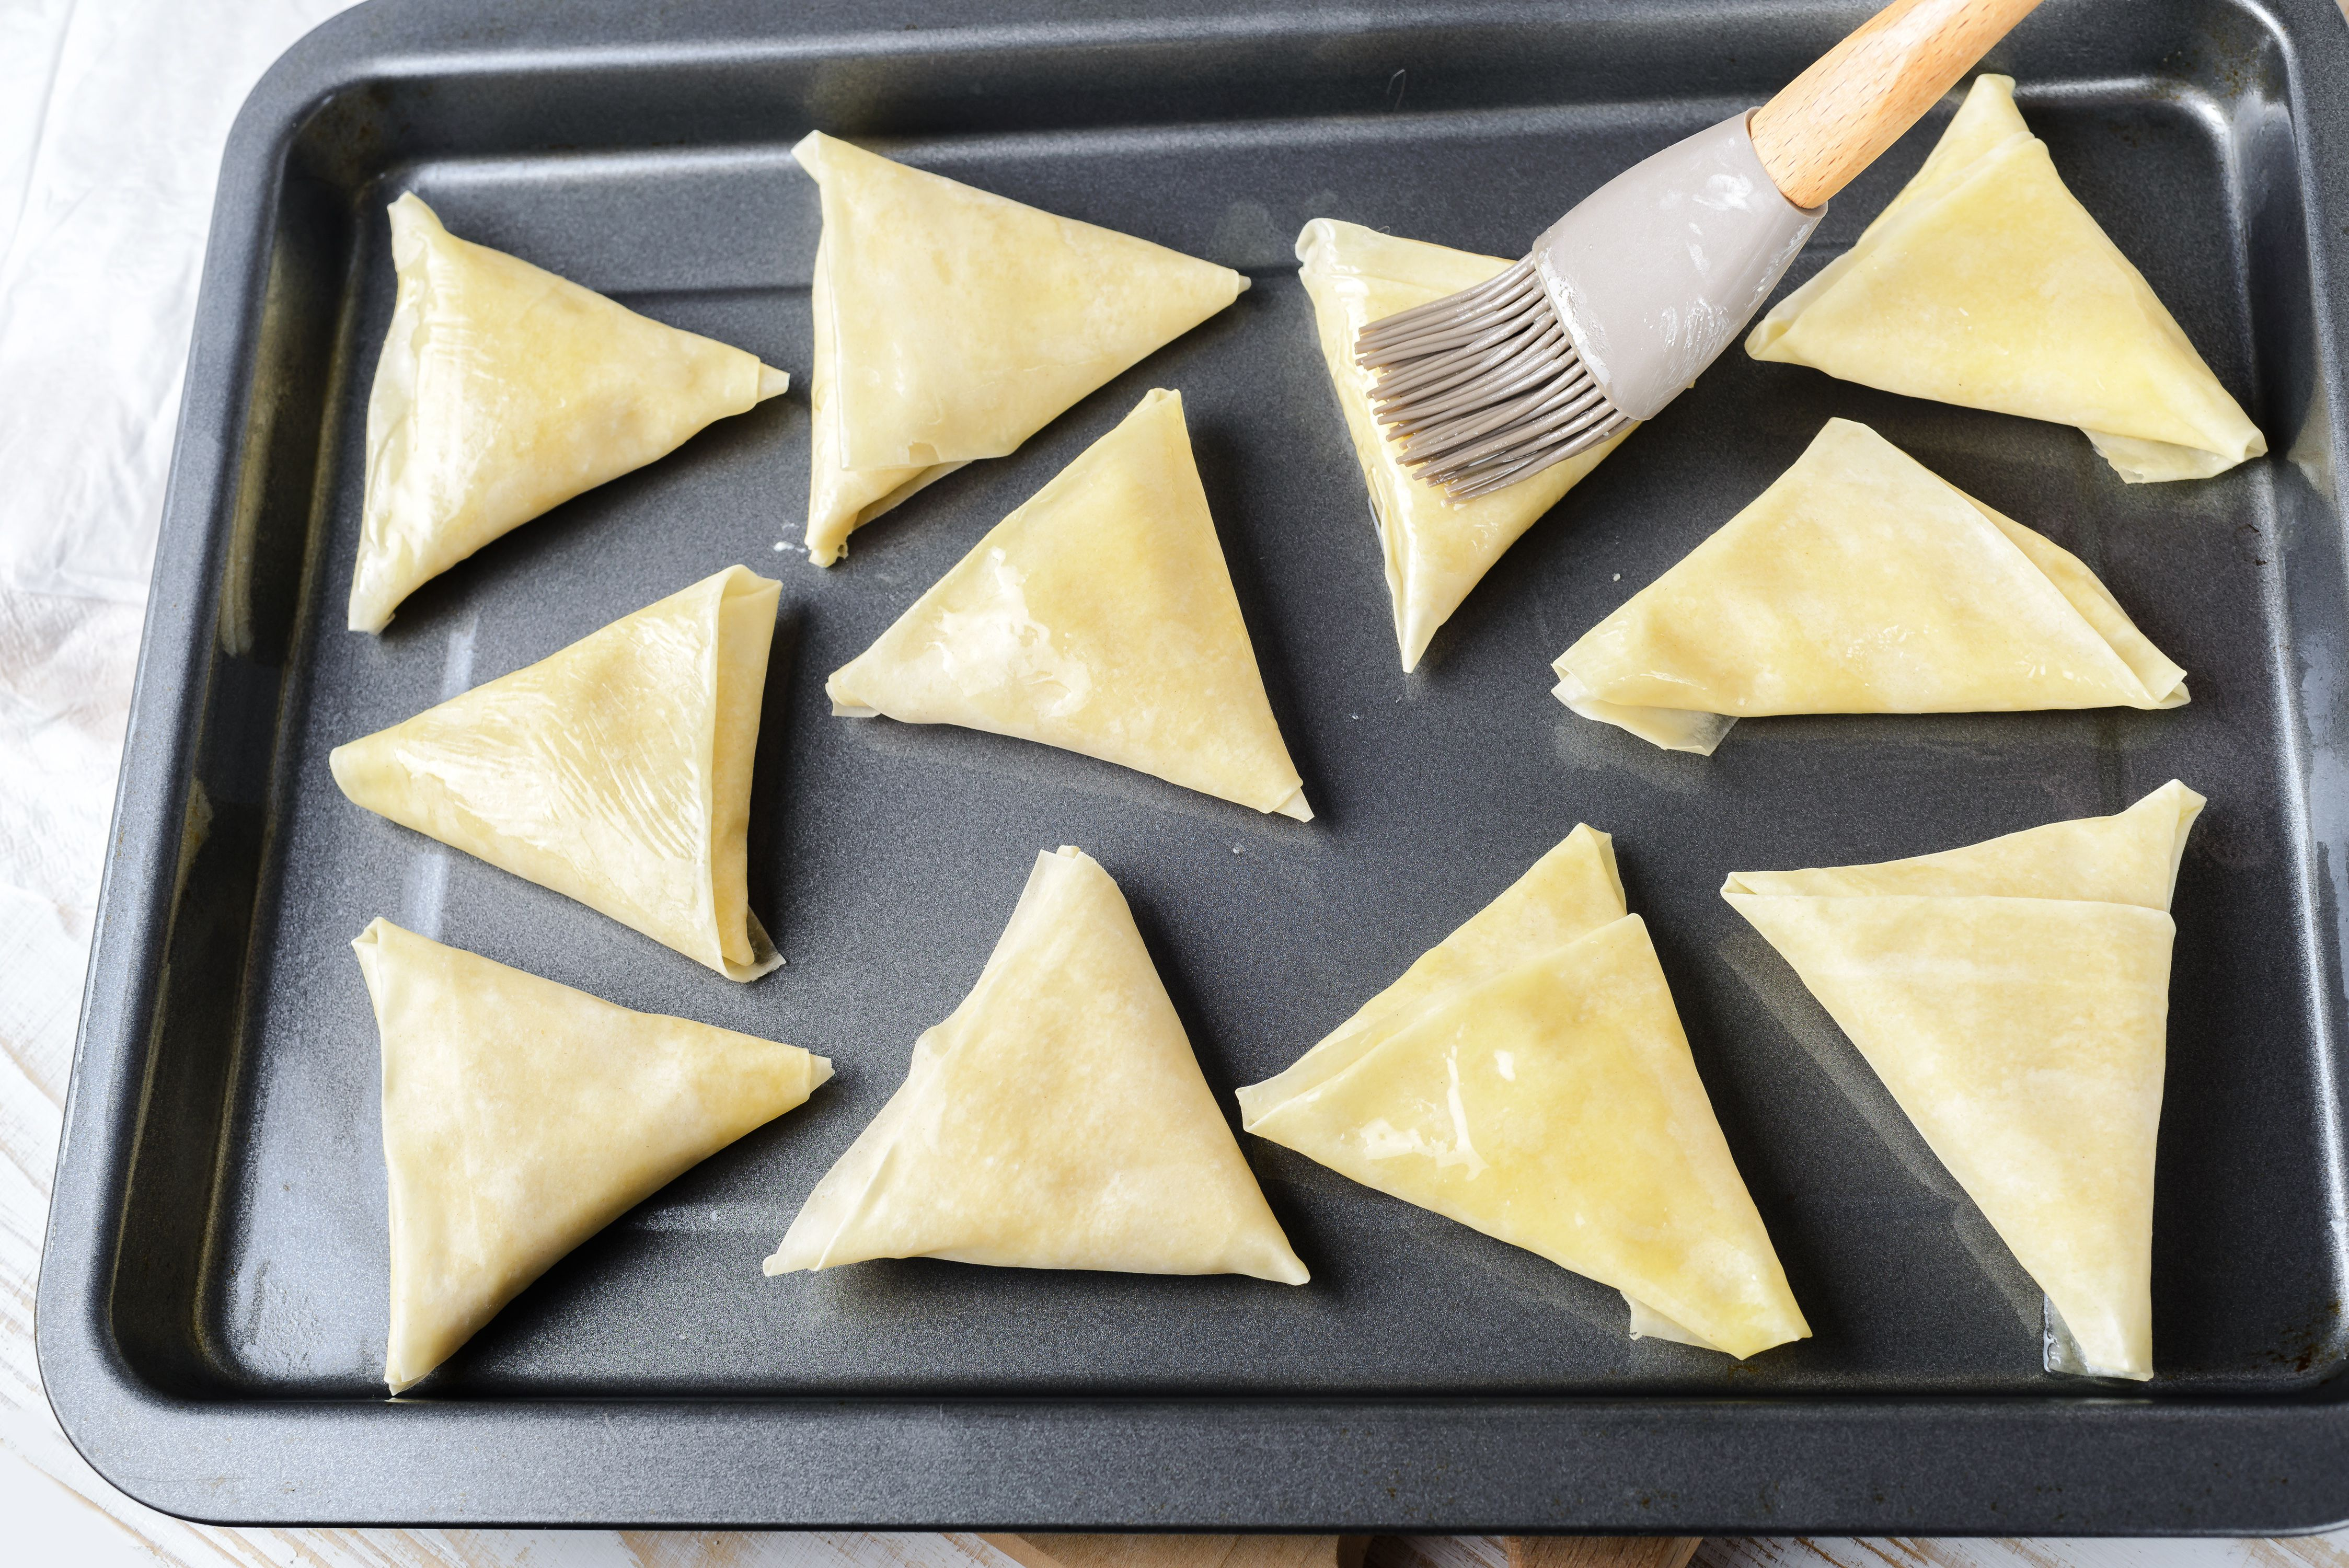 Brush triangles with butter